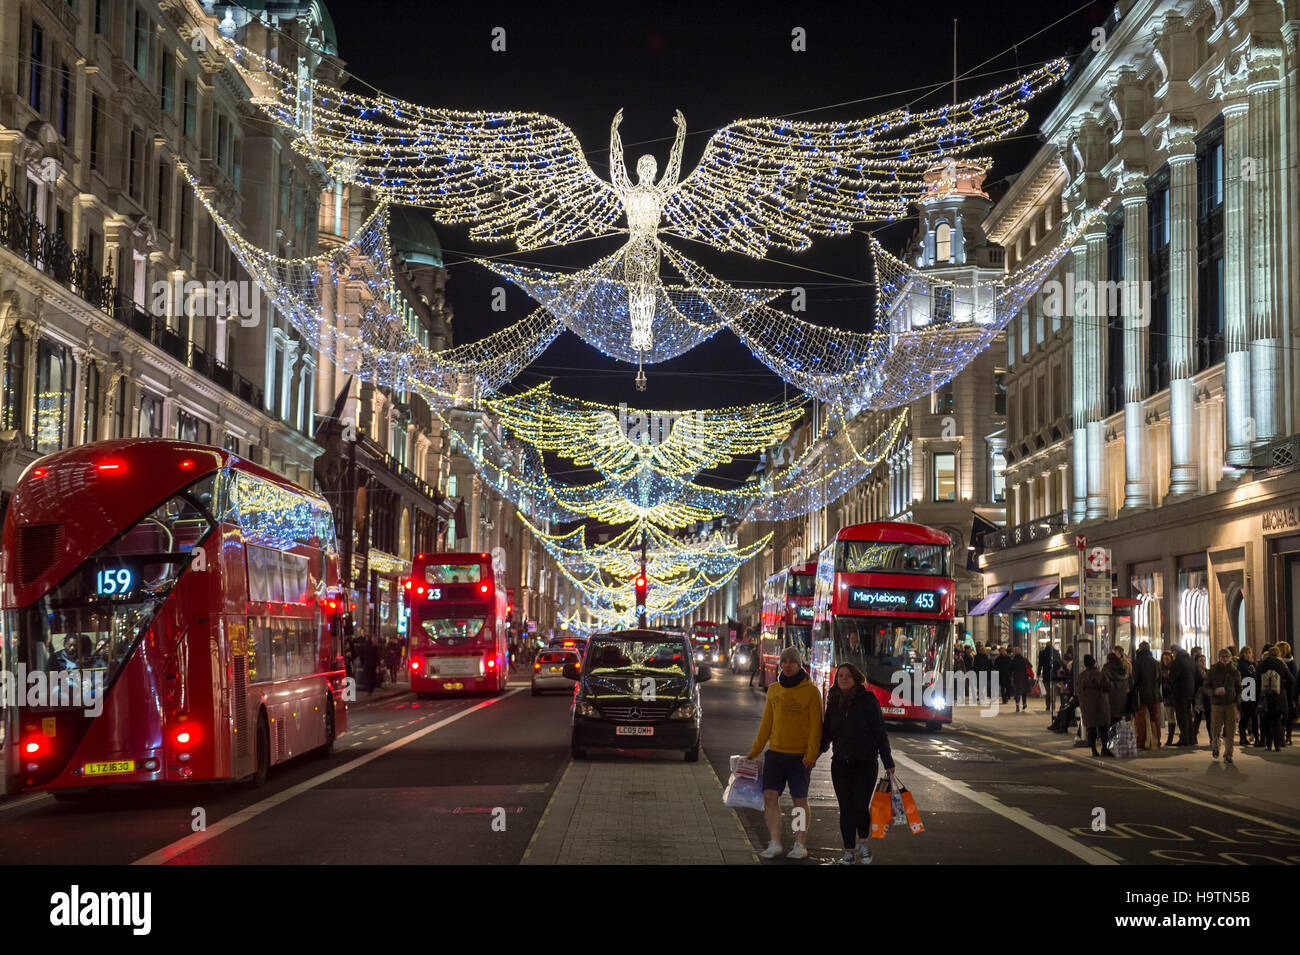 LONDON - NOVEMBER 18, 2016: Red double-decker bus pass under twinkling Christmas angels lighting up the upscale - Stock Image